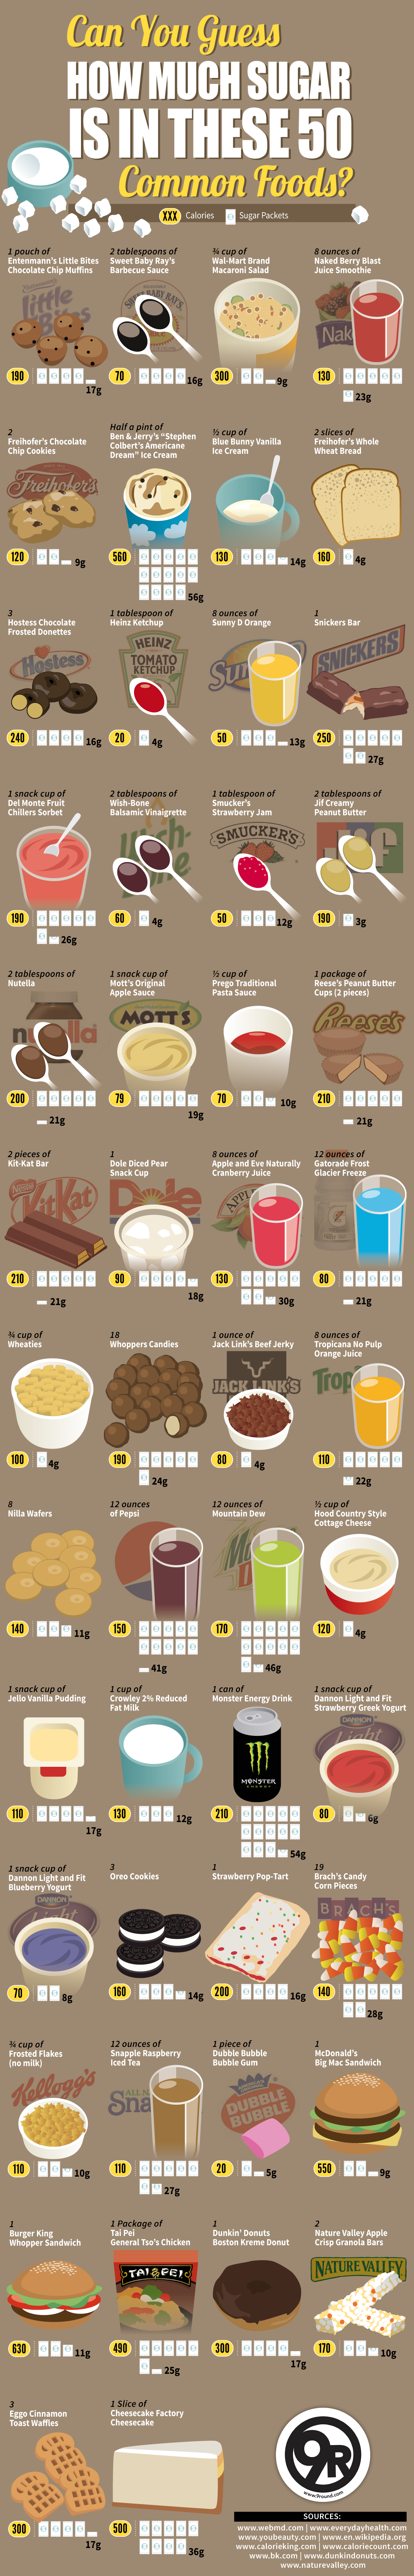 Can You Guess How Much Sugar is in These 50 Common Foods? #Infographic